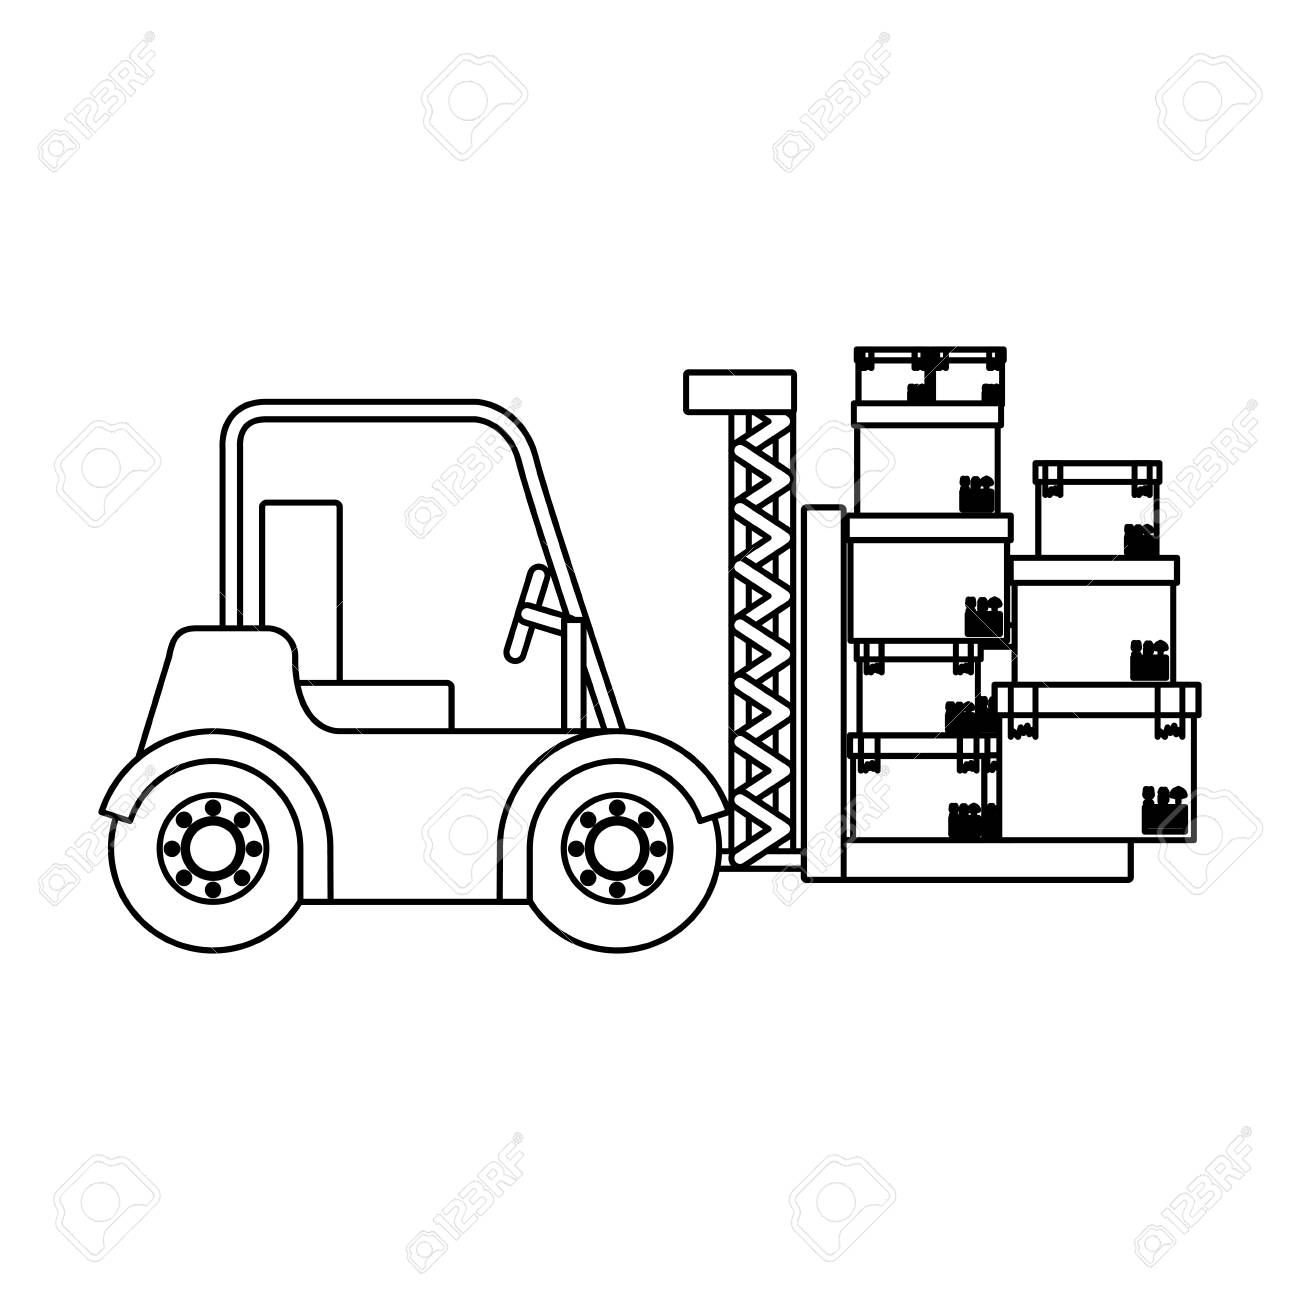 1300x1300 Black Silhouette Contour Forklift Truck With Forks With Boxes